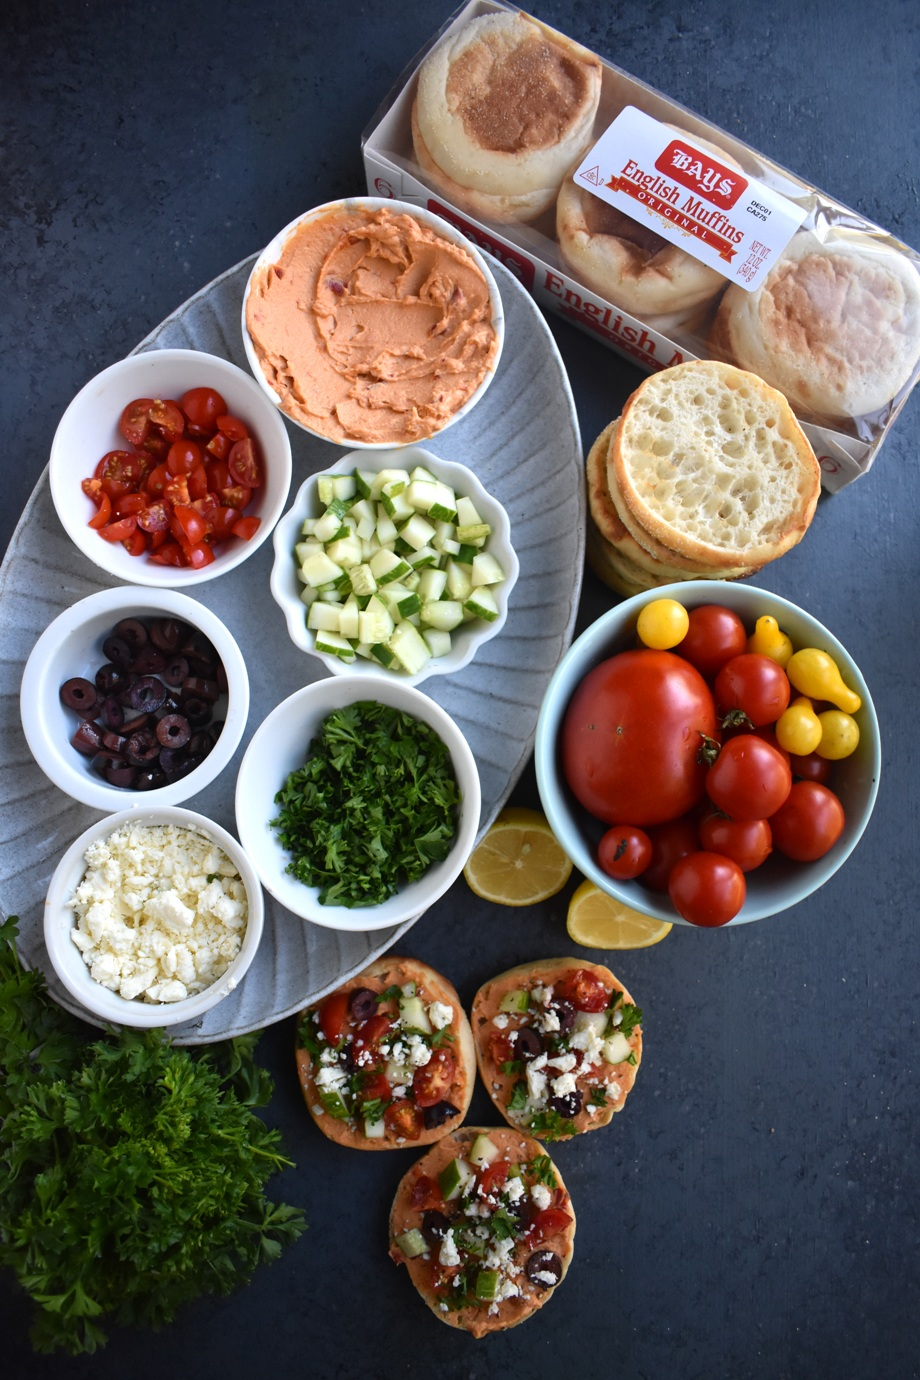 Mediterranean Hummus Bites are loaded with red pepper hummus, kalamata olives, tomatoes, cucumber and feta cheese on a toasted English muffin for an easy appetizer ready in 10 minutes that everyone will love! www.nutritionistreviews.com #healthy #appetizer #cleaneating #holidays